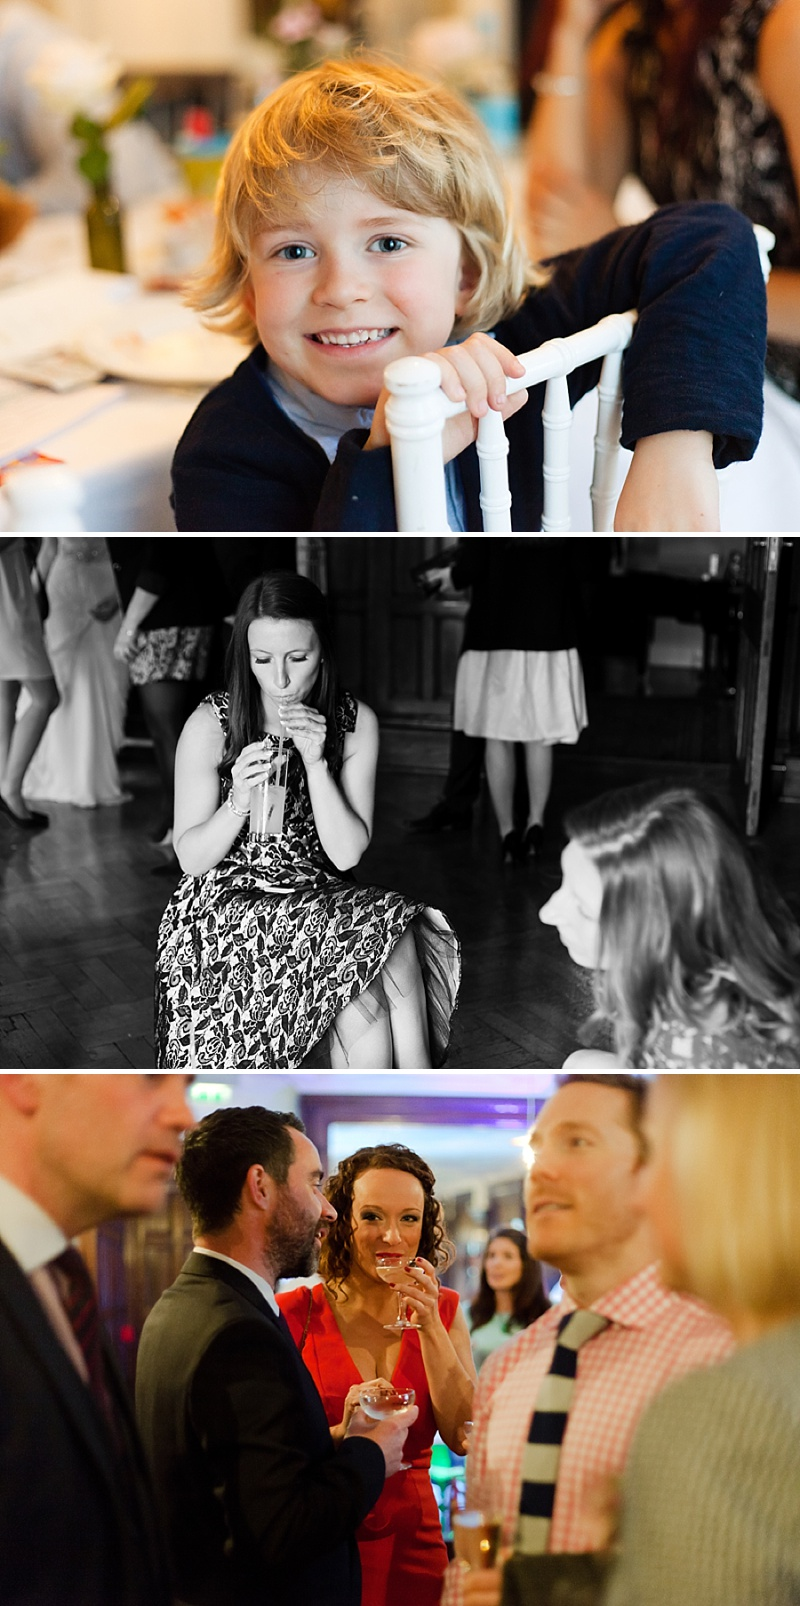 An-Intimate-20s-styled-Wedding-At-Kettner's-Soho,-Bride-in-Jane-Bourvis-Gown_0010